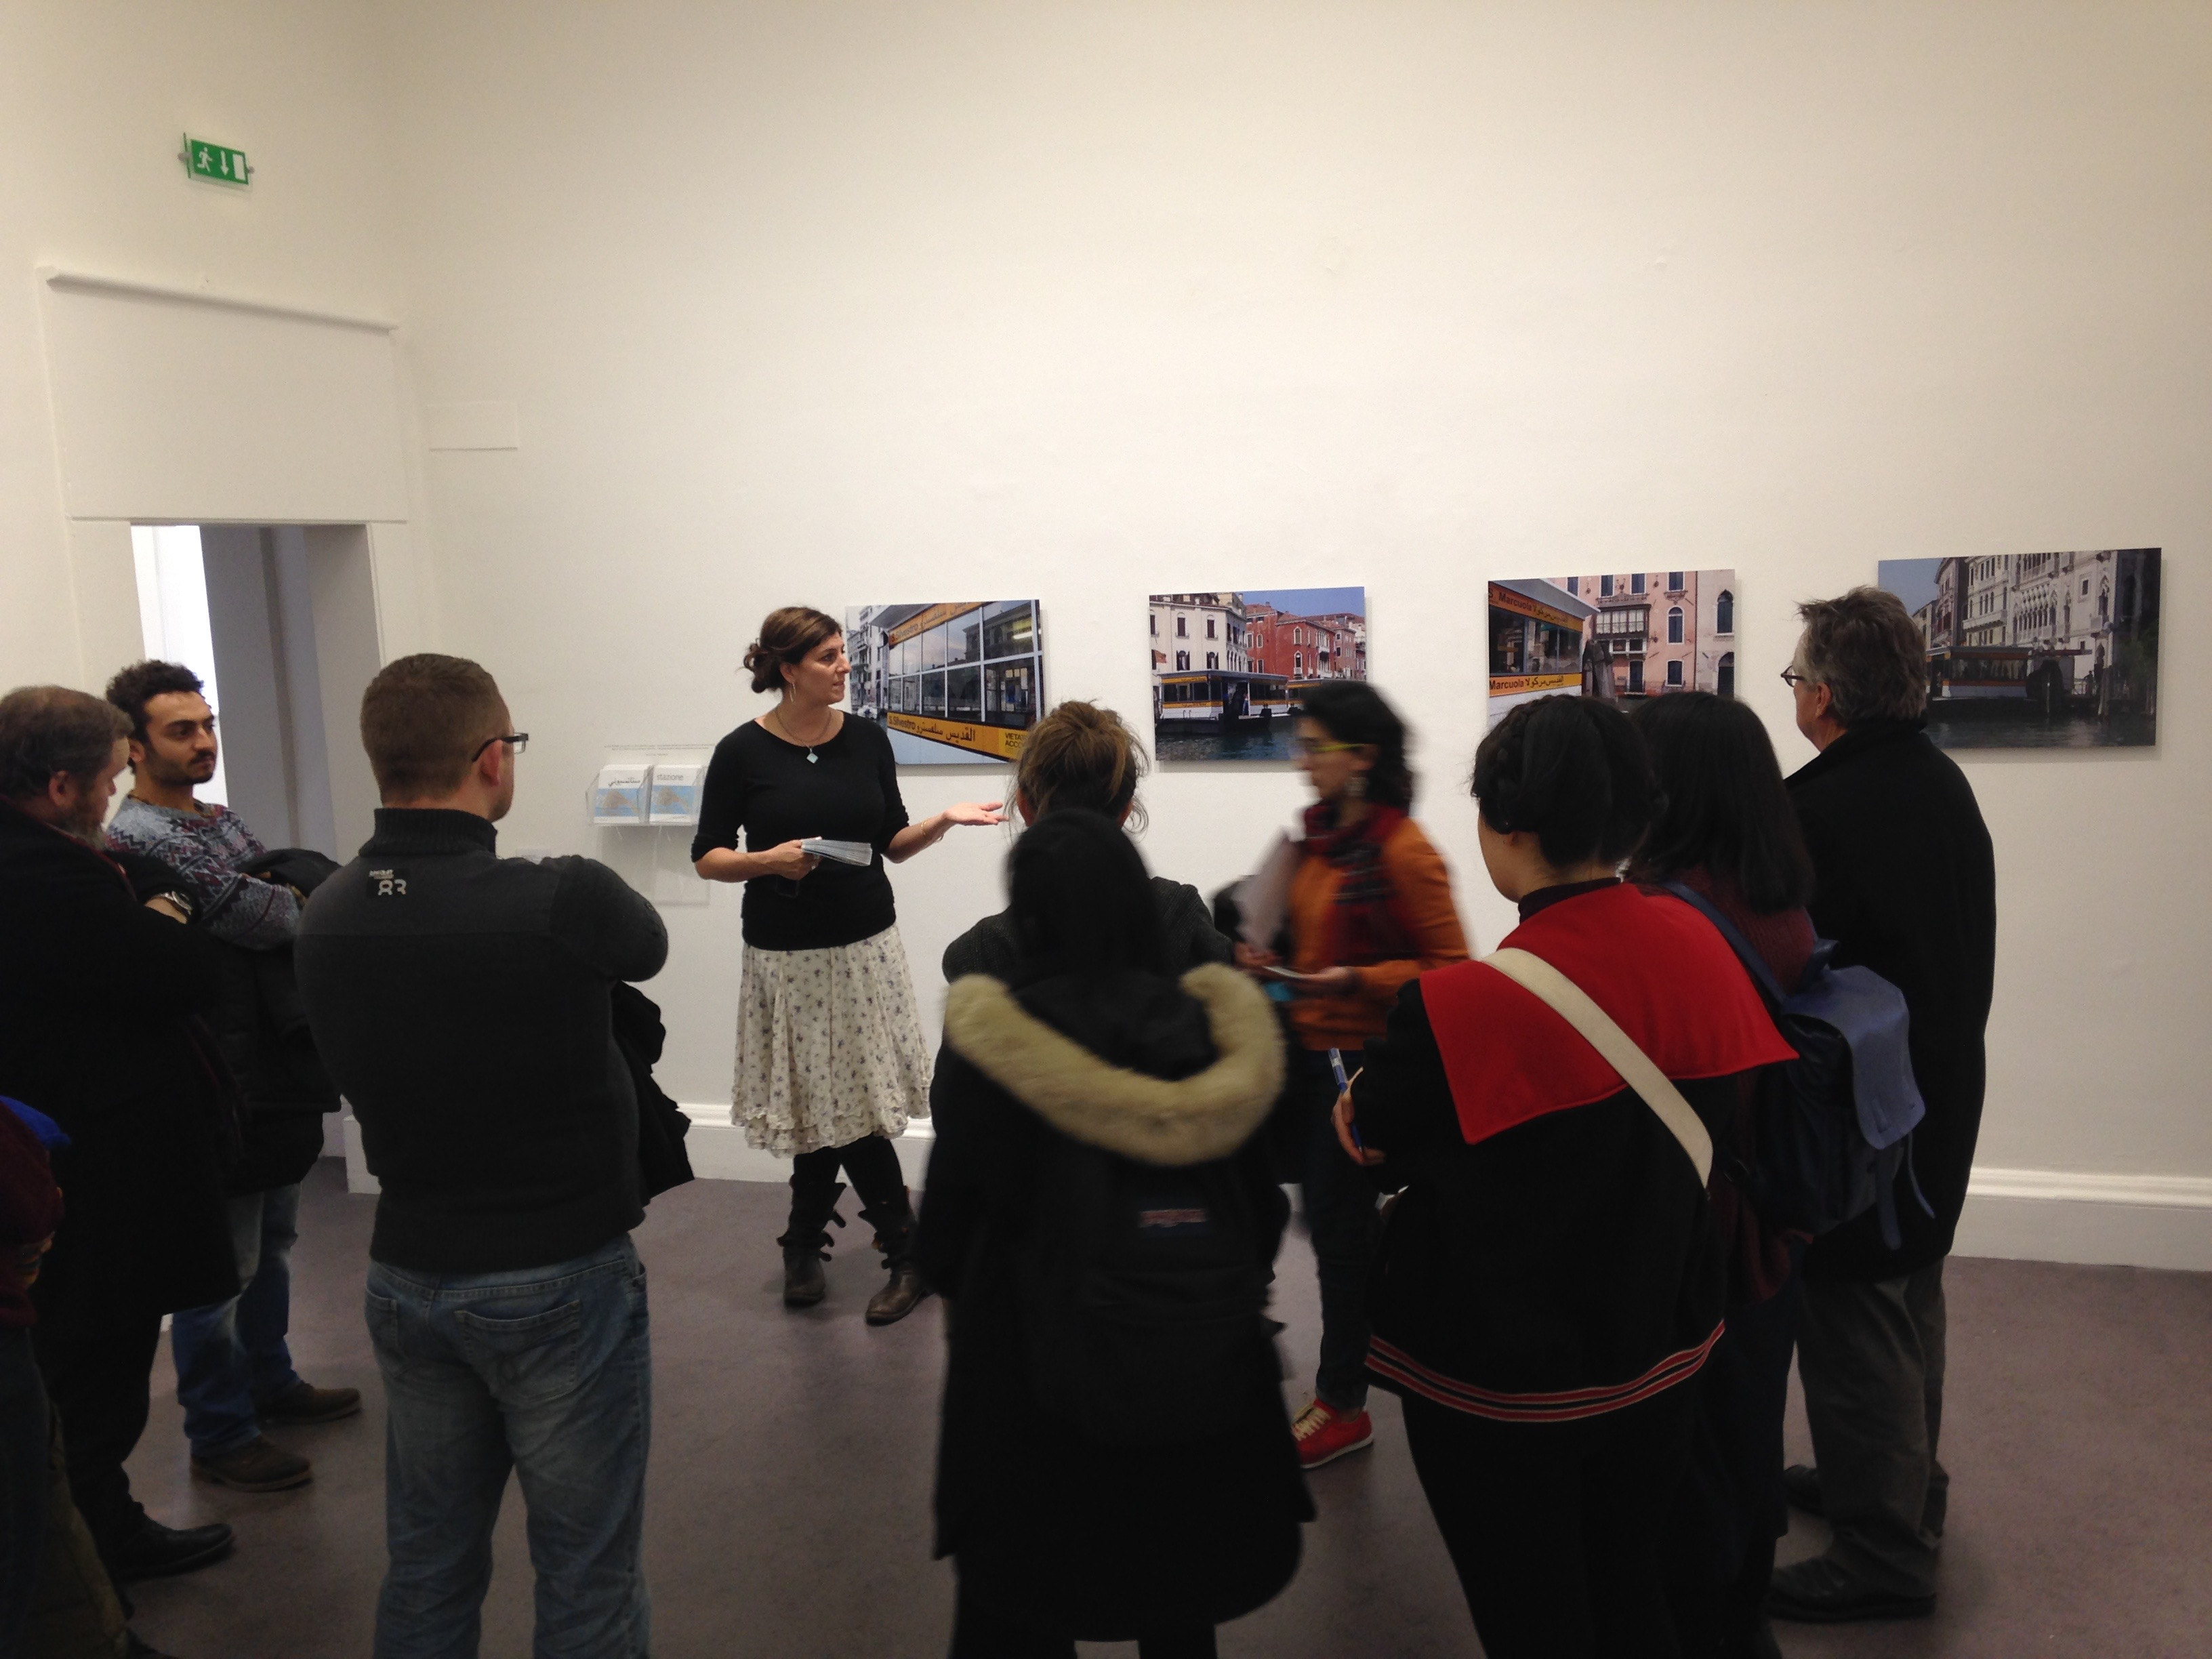 Artist Emily Jacir with workshop participants in her IMMA exhibition Europa